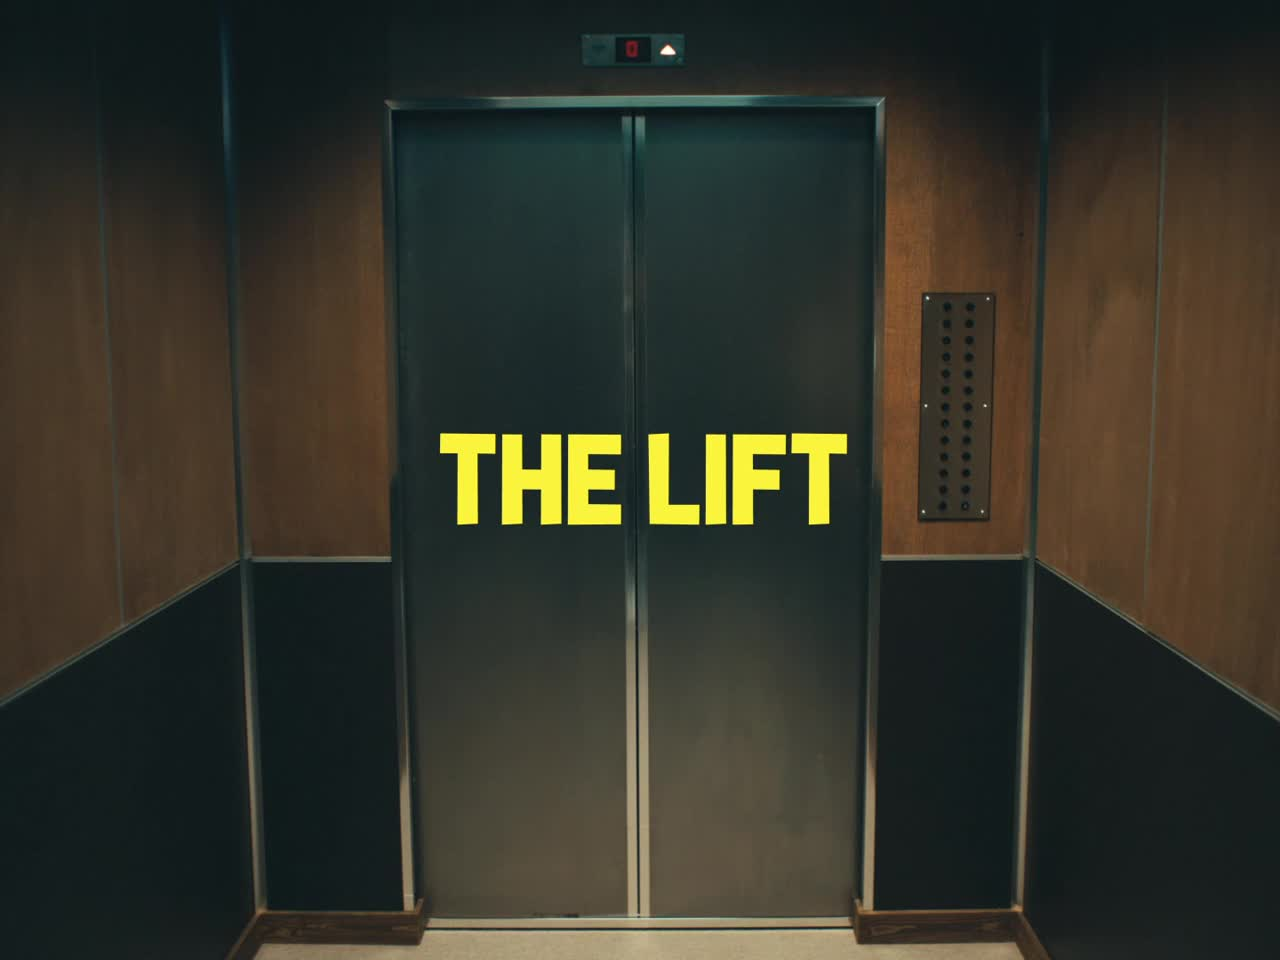 Thumbnail for The lift